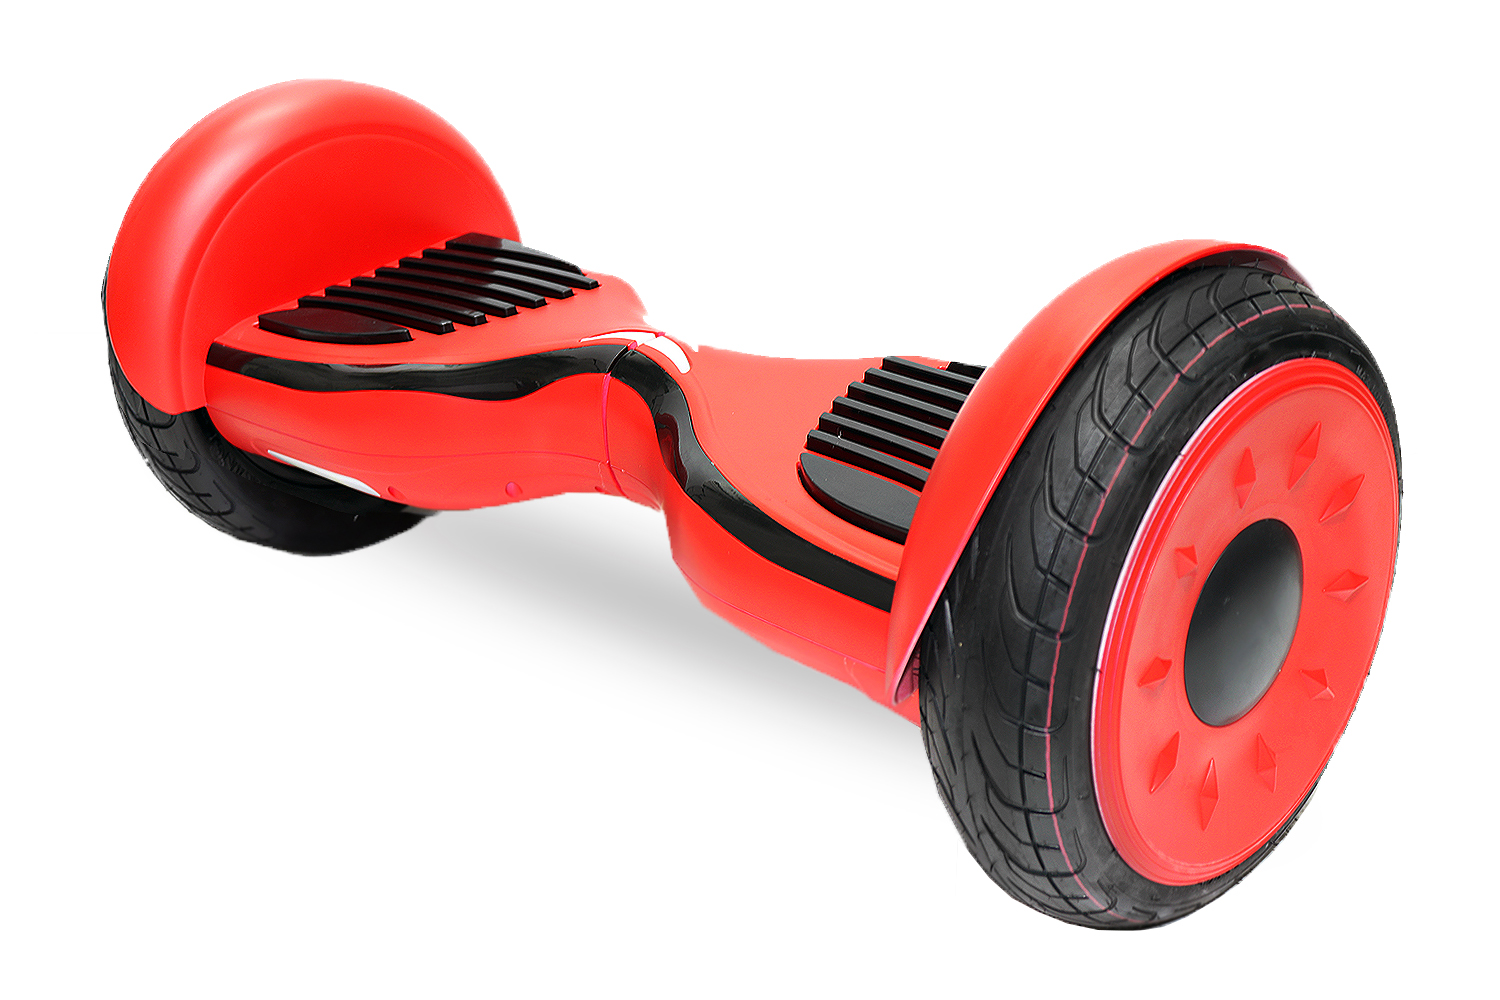 kidcars kinder elektroautos mit akku 2x 350w smarty hoverboard 10 zoll istanbul. Black Bedroom Furniture Sets. Home Design Ideas